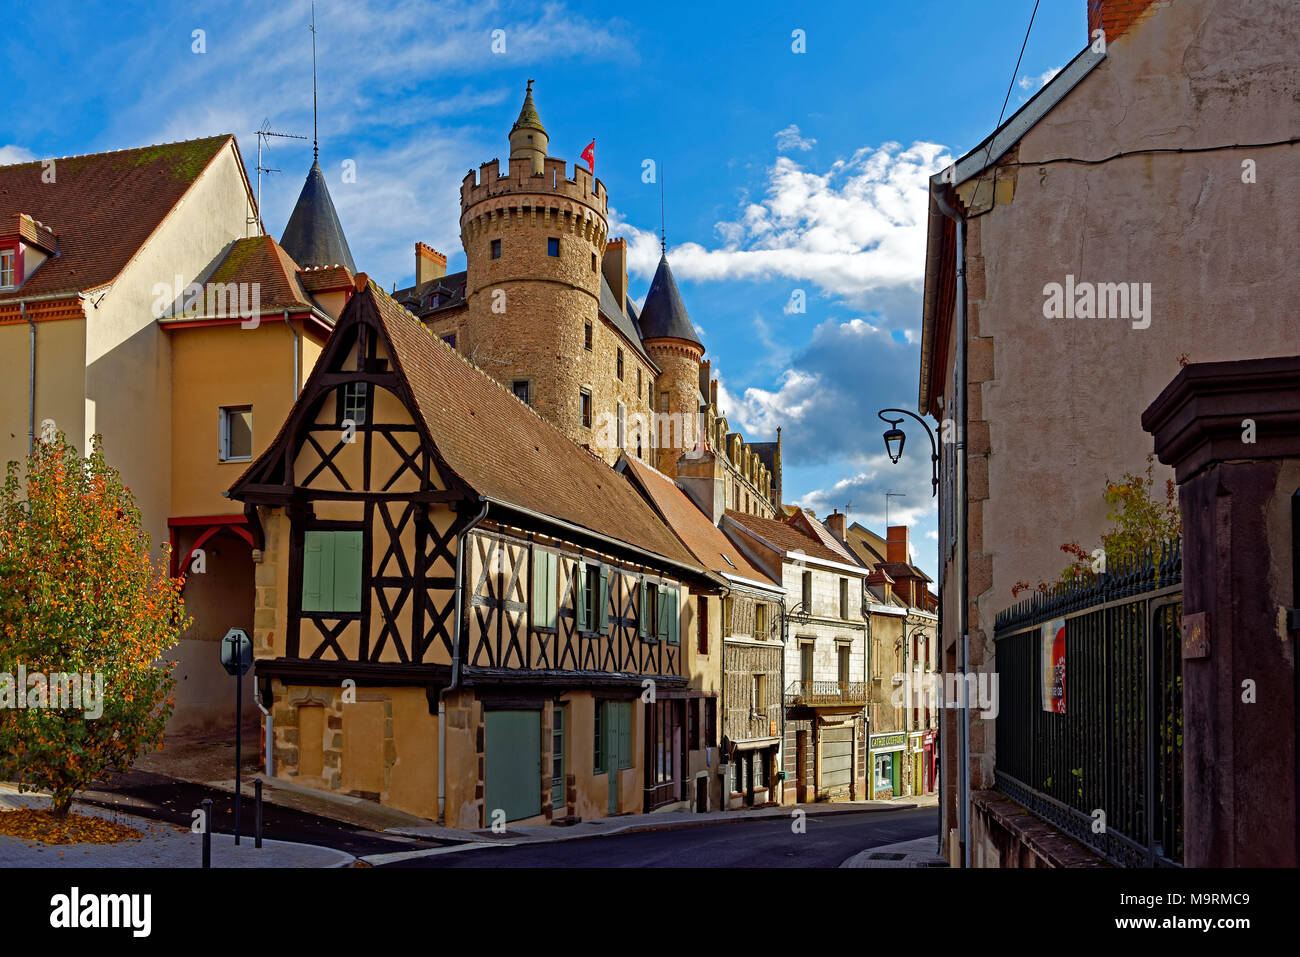 europe france auvergne lapalisse rue du commerce vous avez vue sur la rue le ch teau de la. Black Bedroom Furniture Sets. Home Design Ideas